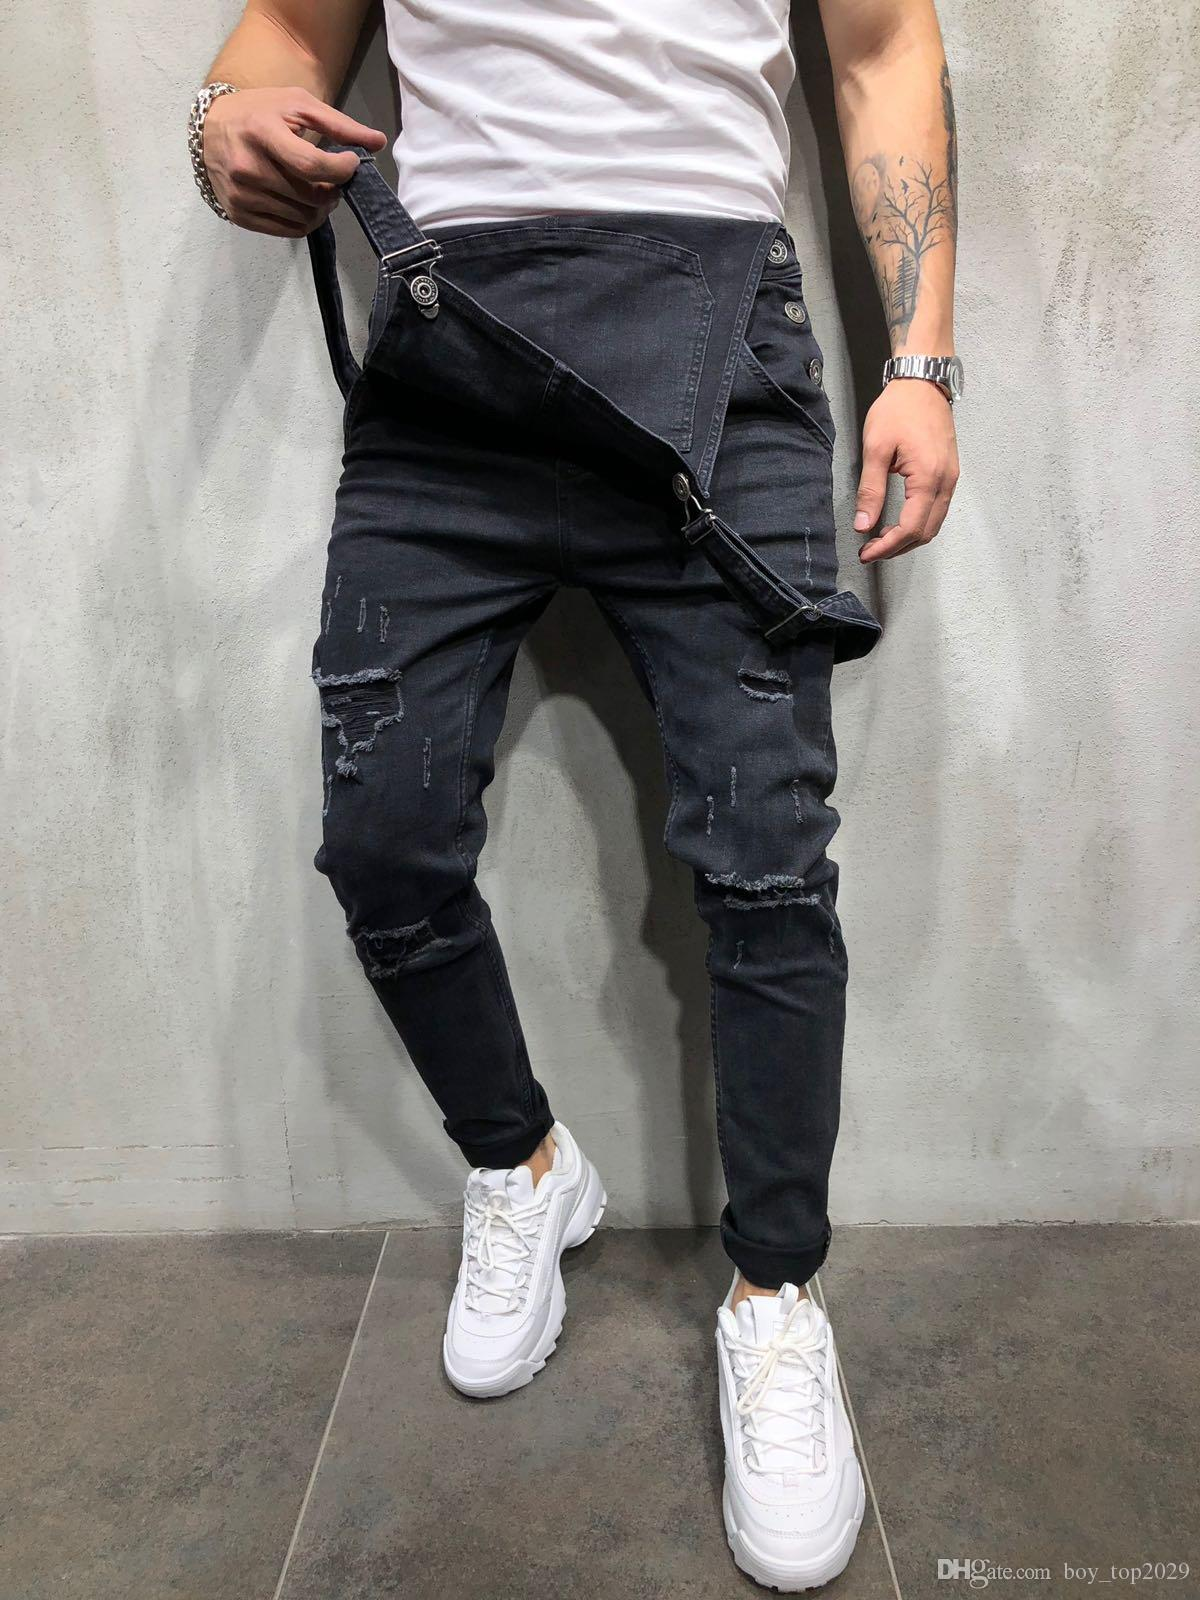 153a74e073f 2019 HOT!!! High Quality Denim Overalls Suspenders Men S Foreign Trade Jeans  Pants Korean Version Of The Jumpsuit Size S 3XL From Boy top2029